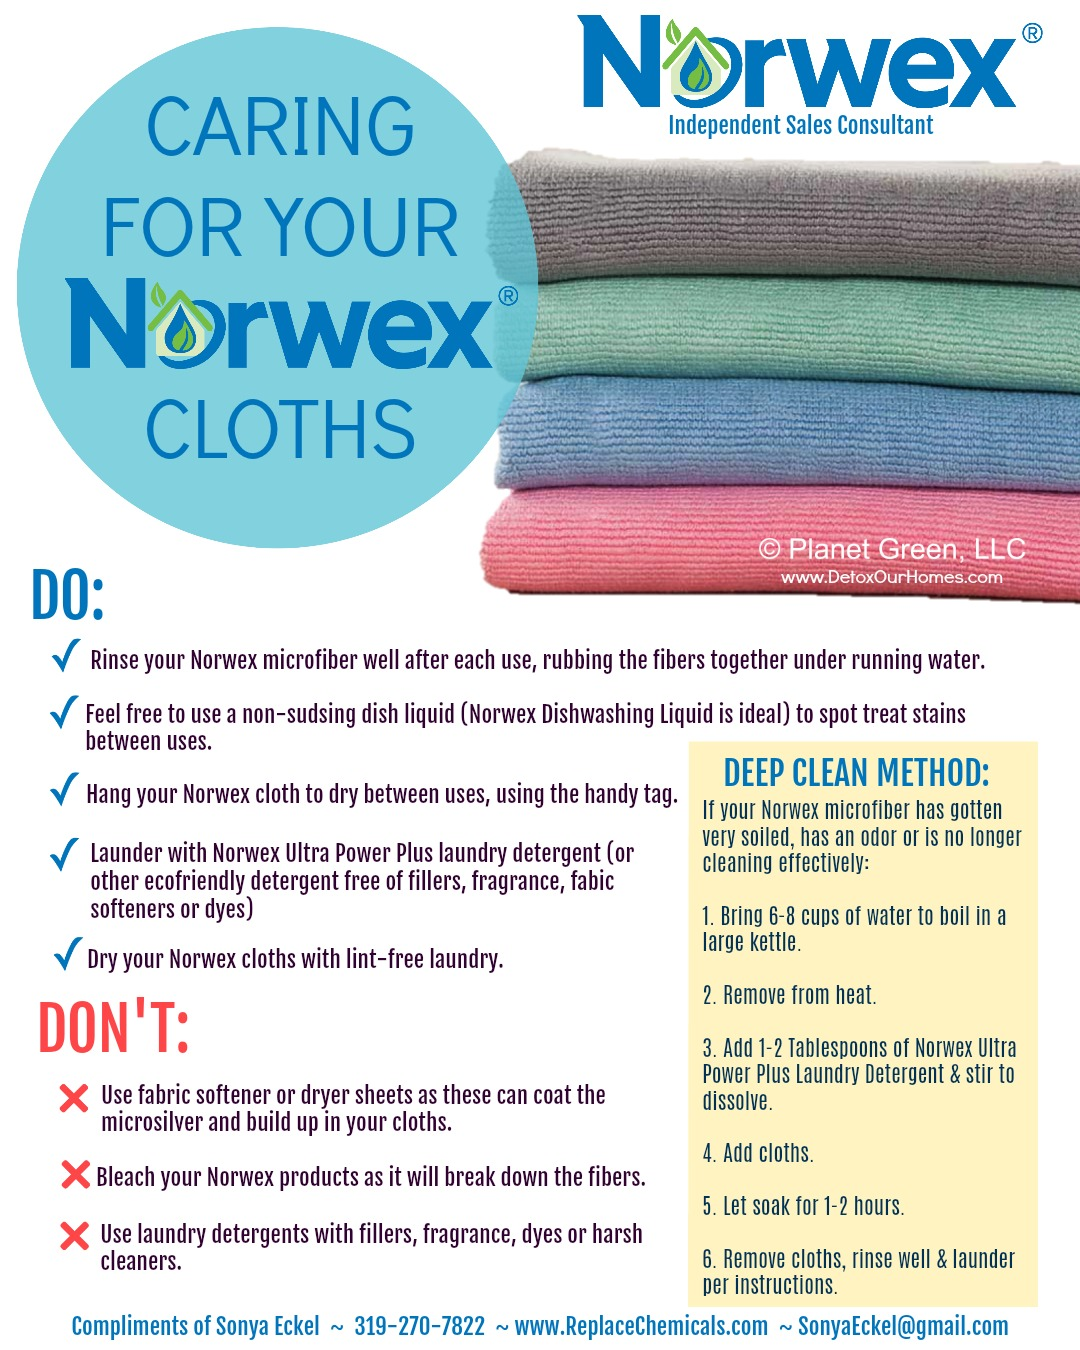 Norwex Washing Instructions